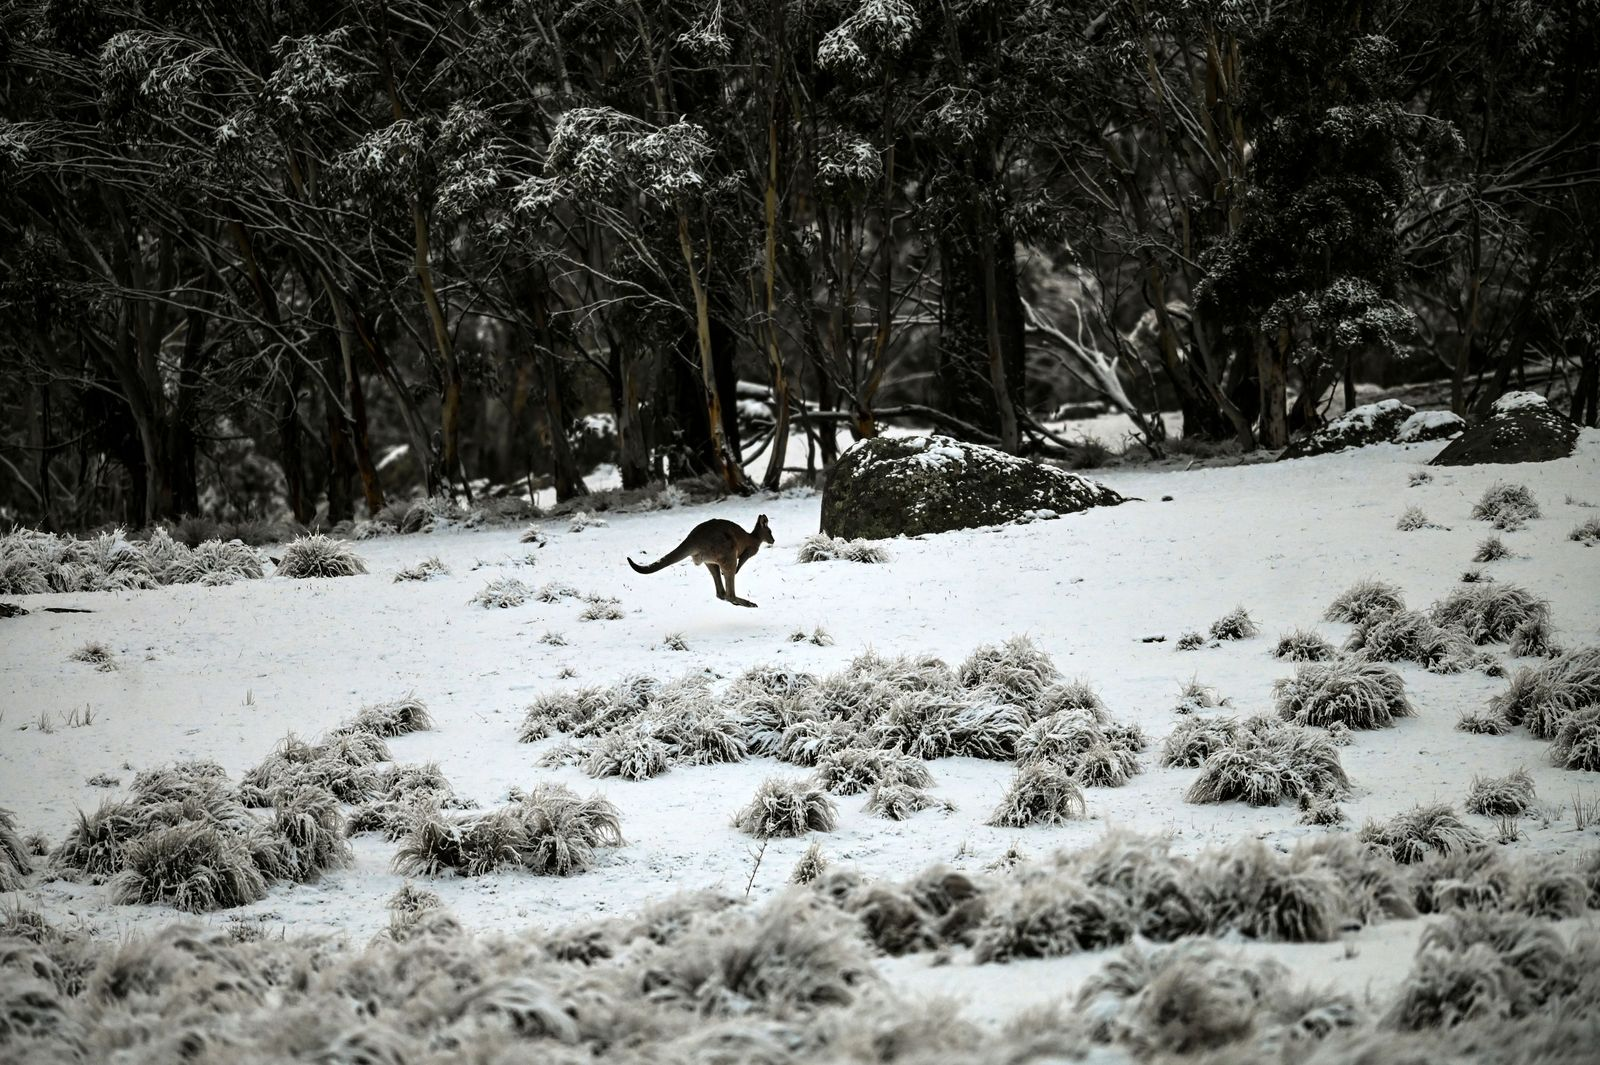 Kangaroo in the snow, Nimmitabel, Australia - 04 Jul 2020